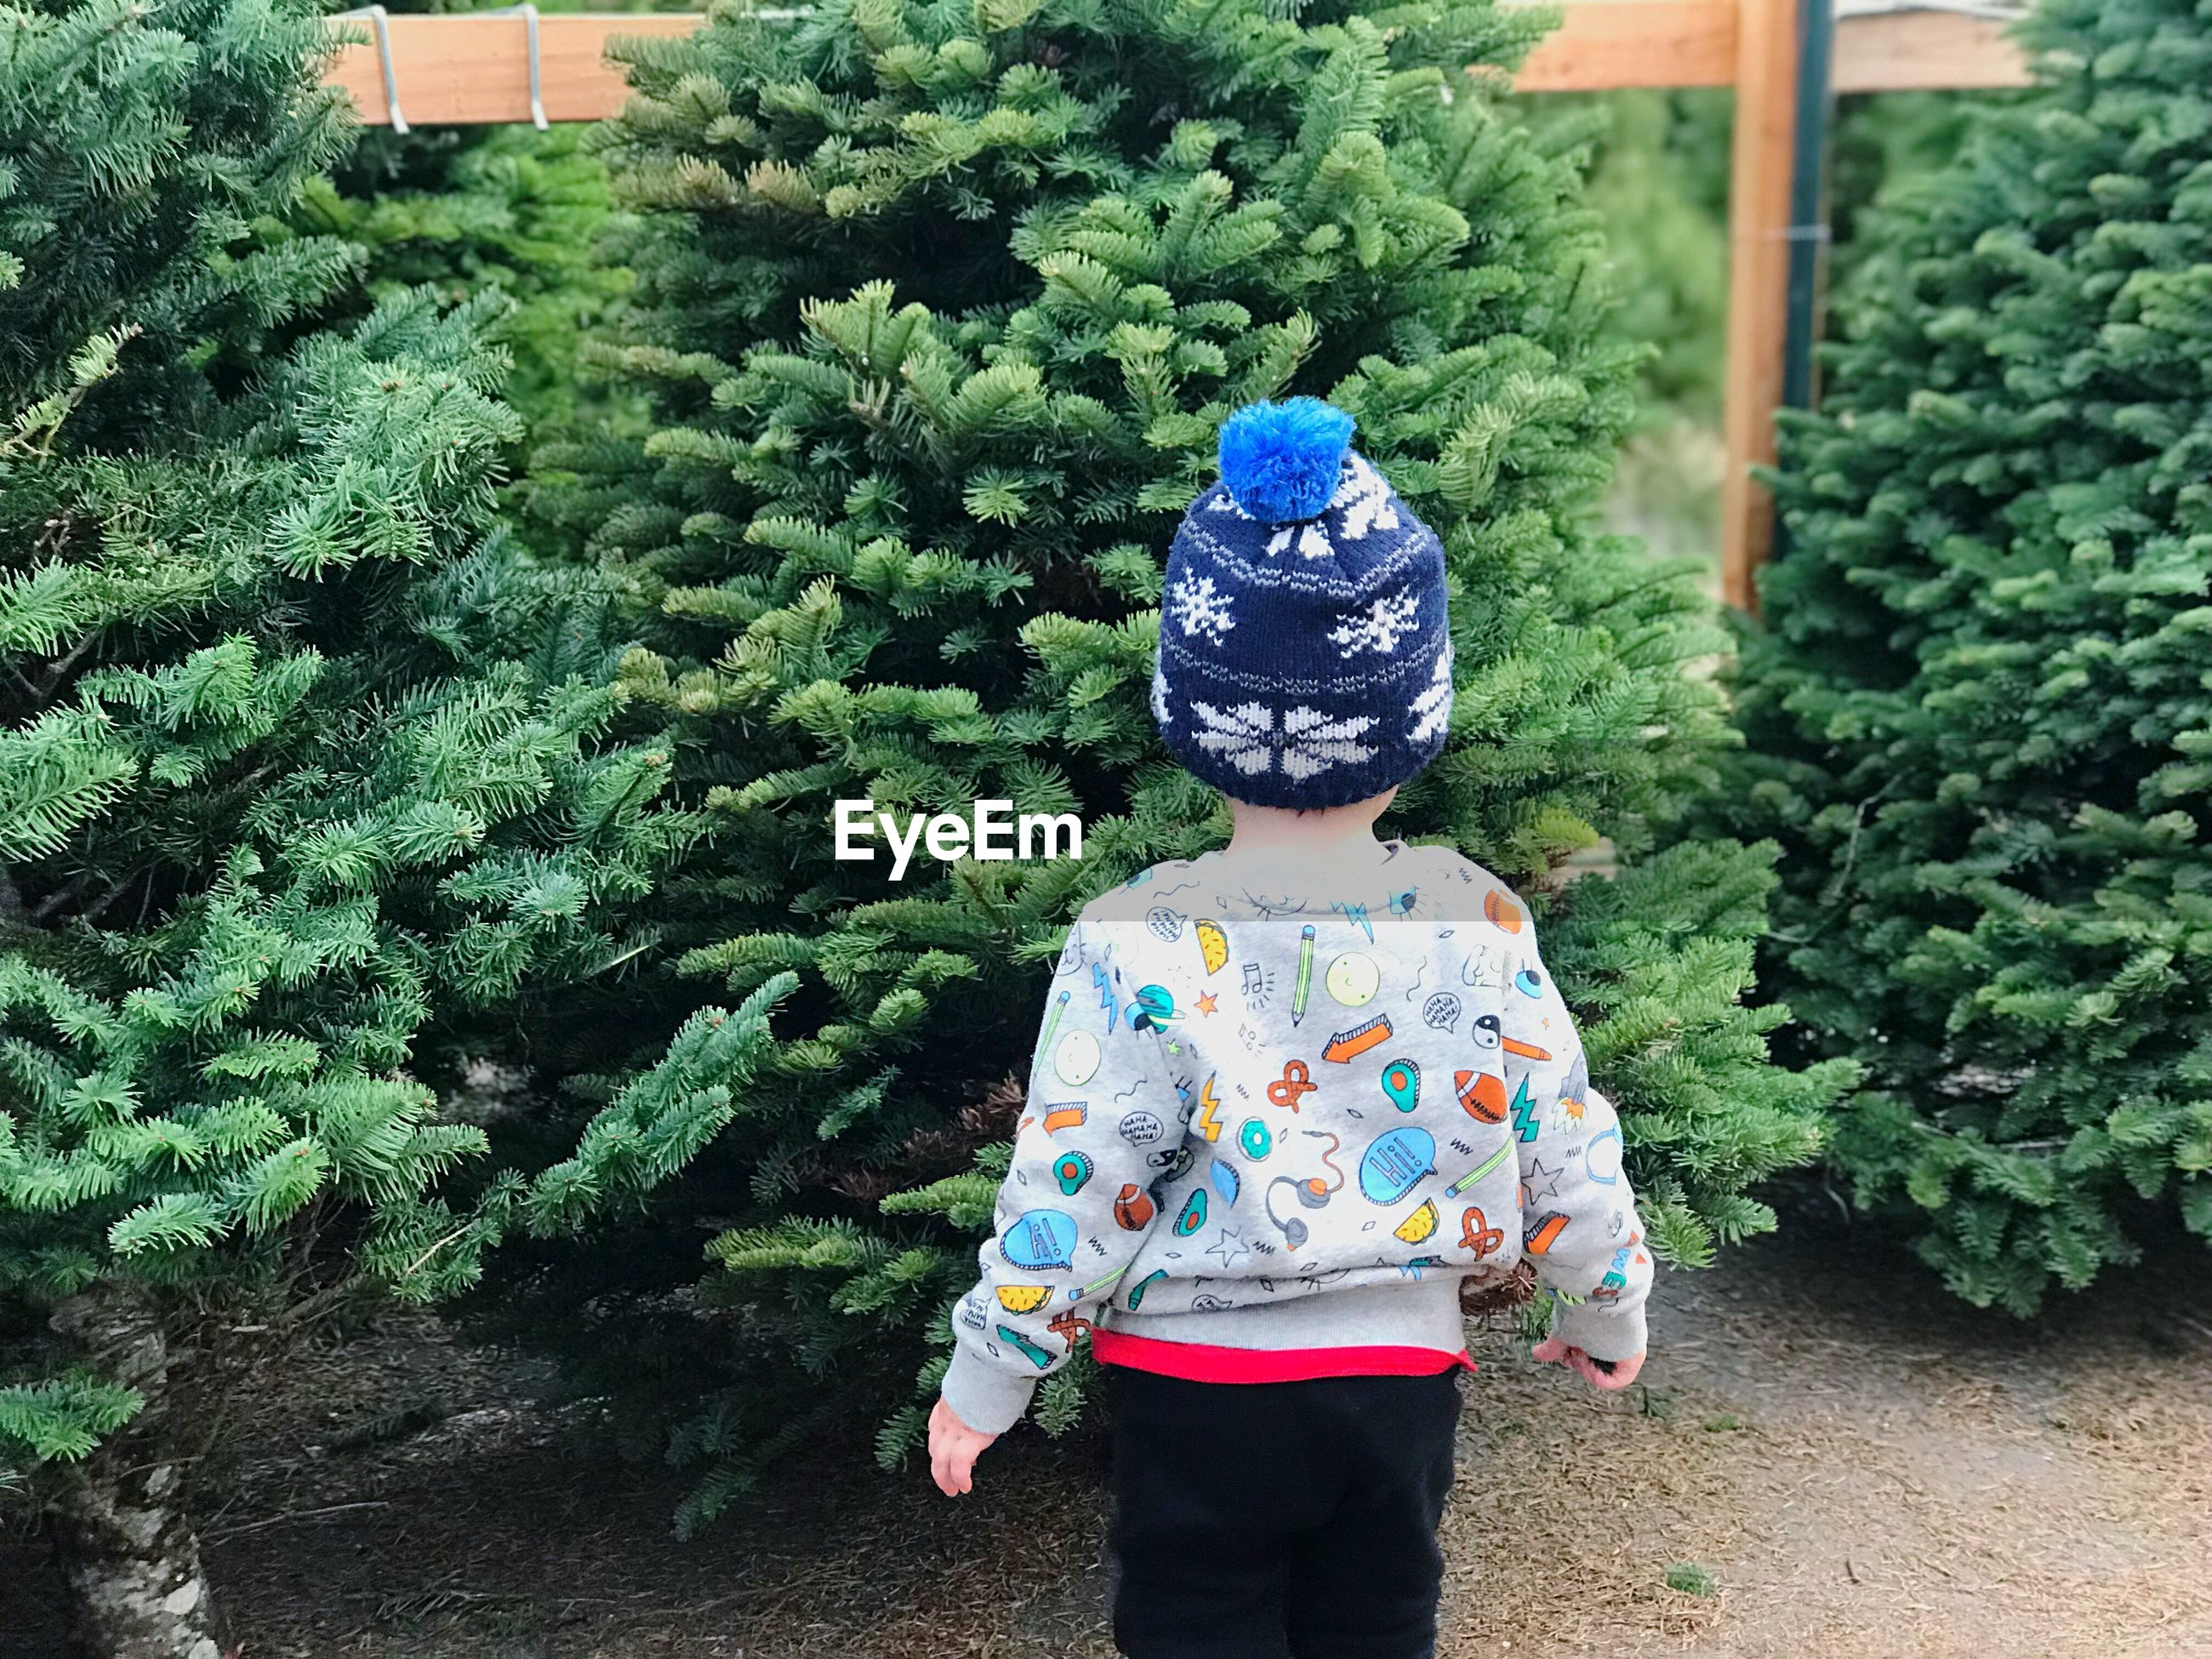 childhood, real people, plant, outdoors, green color, front or back yard, day, growth, one person, boys, tree, standing, nature, lifestyles, people